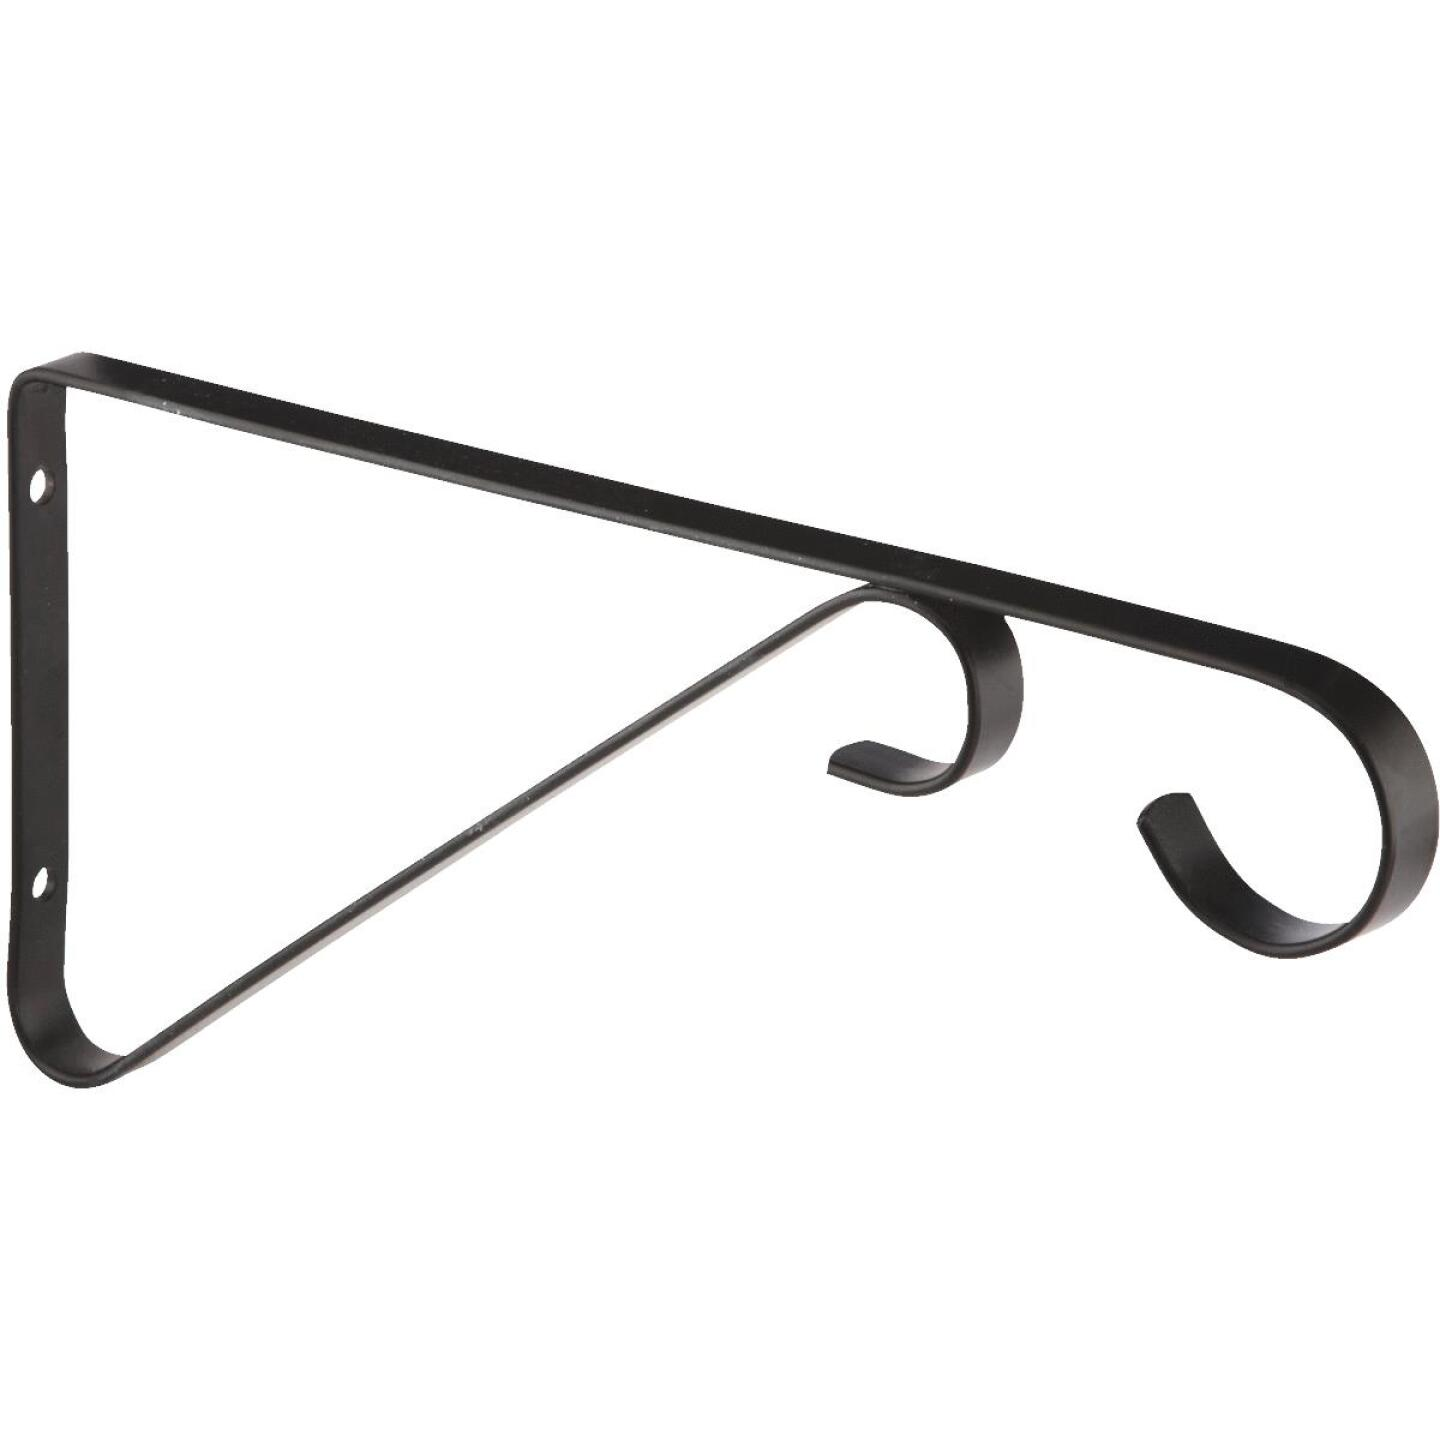 National 9 In. Black Steel Hanging Plant Bracket Image 2